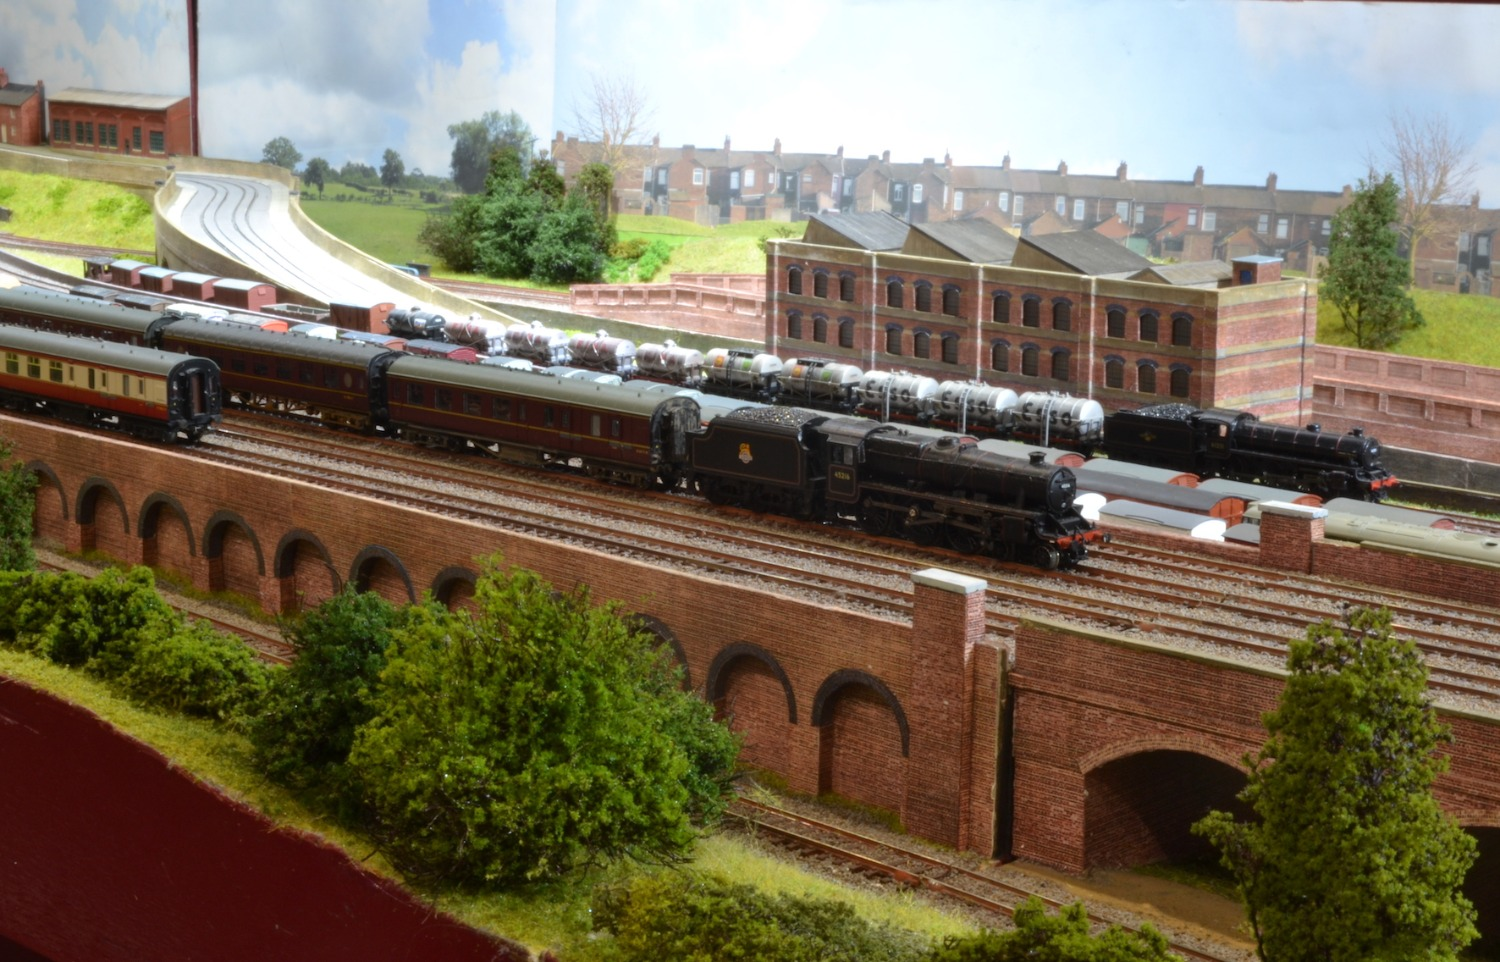 View across rear of layout to canal and beyond_edited